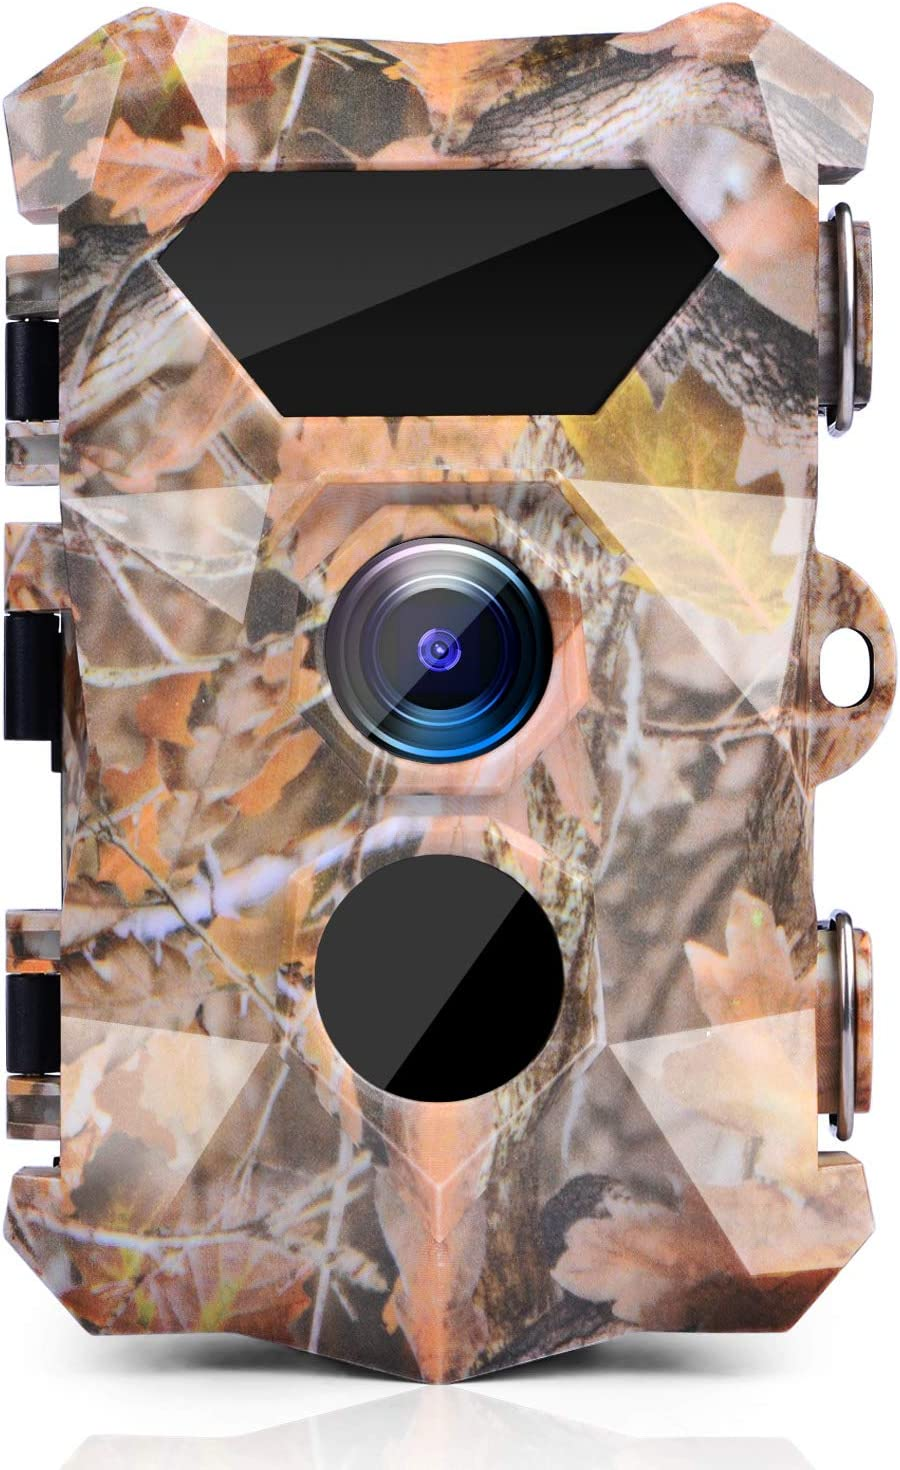 ZIMOCE Trail Game Camera 16MP 1080P, Hunting Cameras with Night